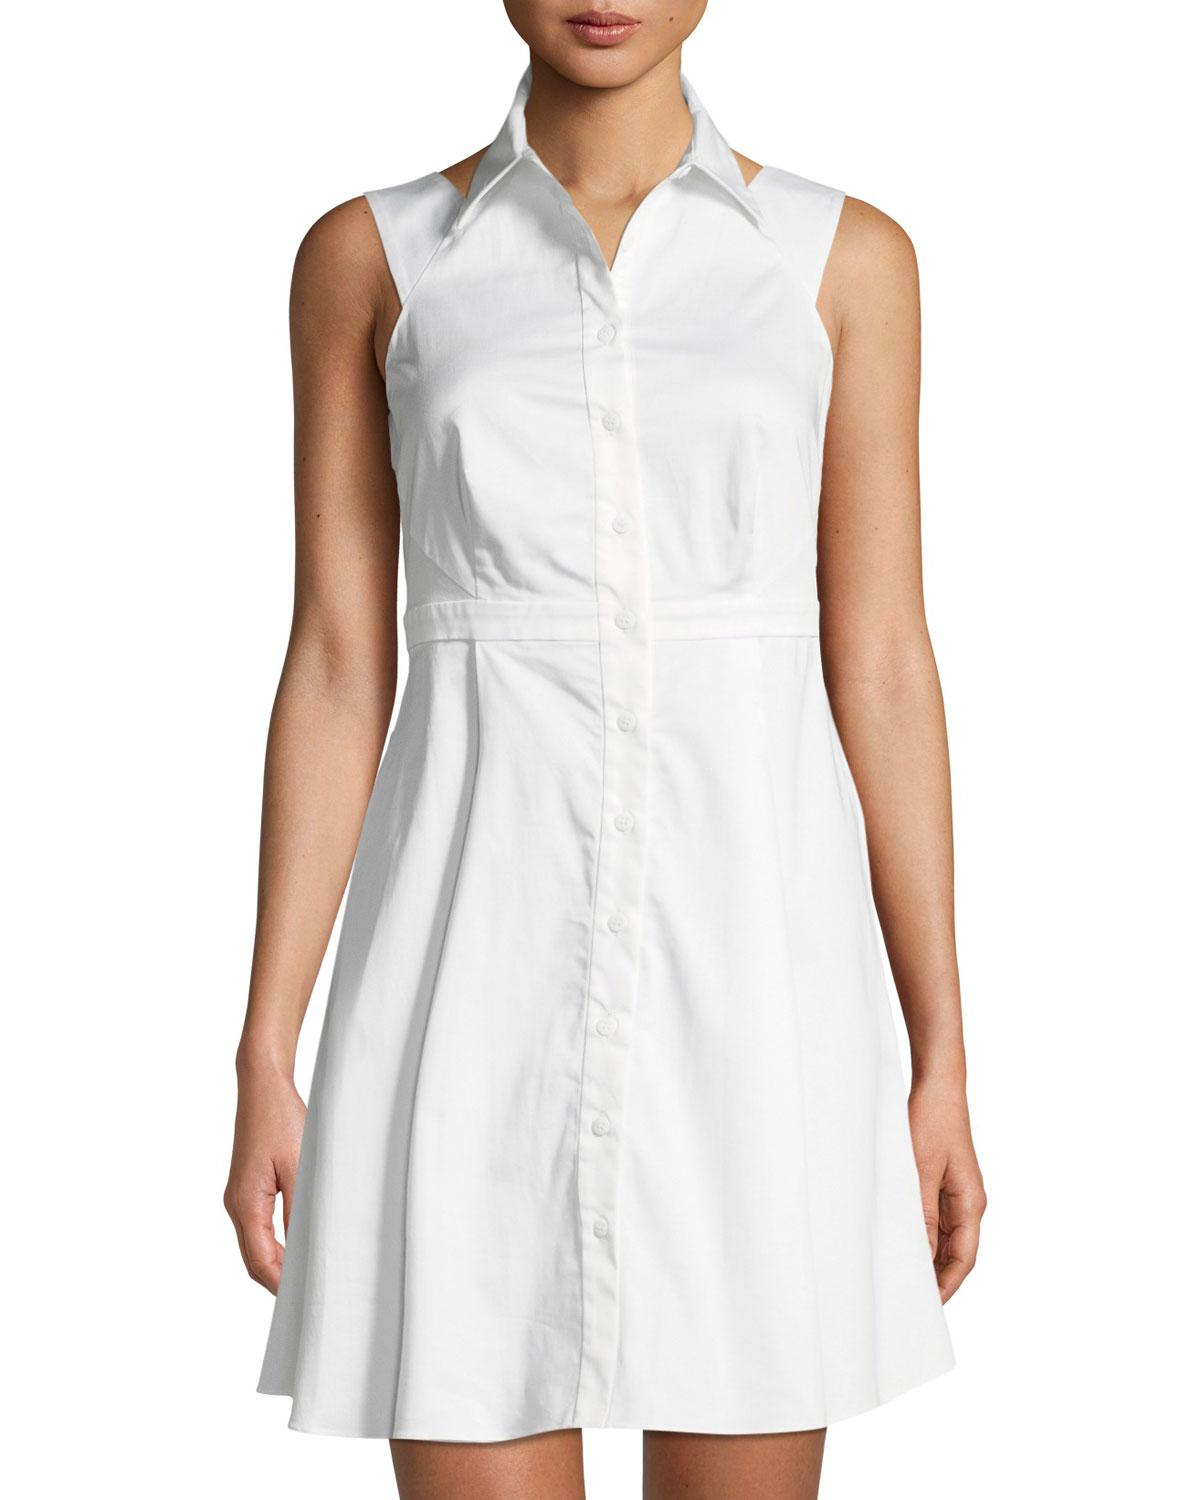 Lyst Zac Posen Isobel Sleeveless Fit And Flare Shirtdress In White